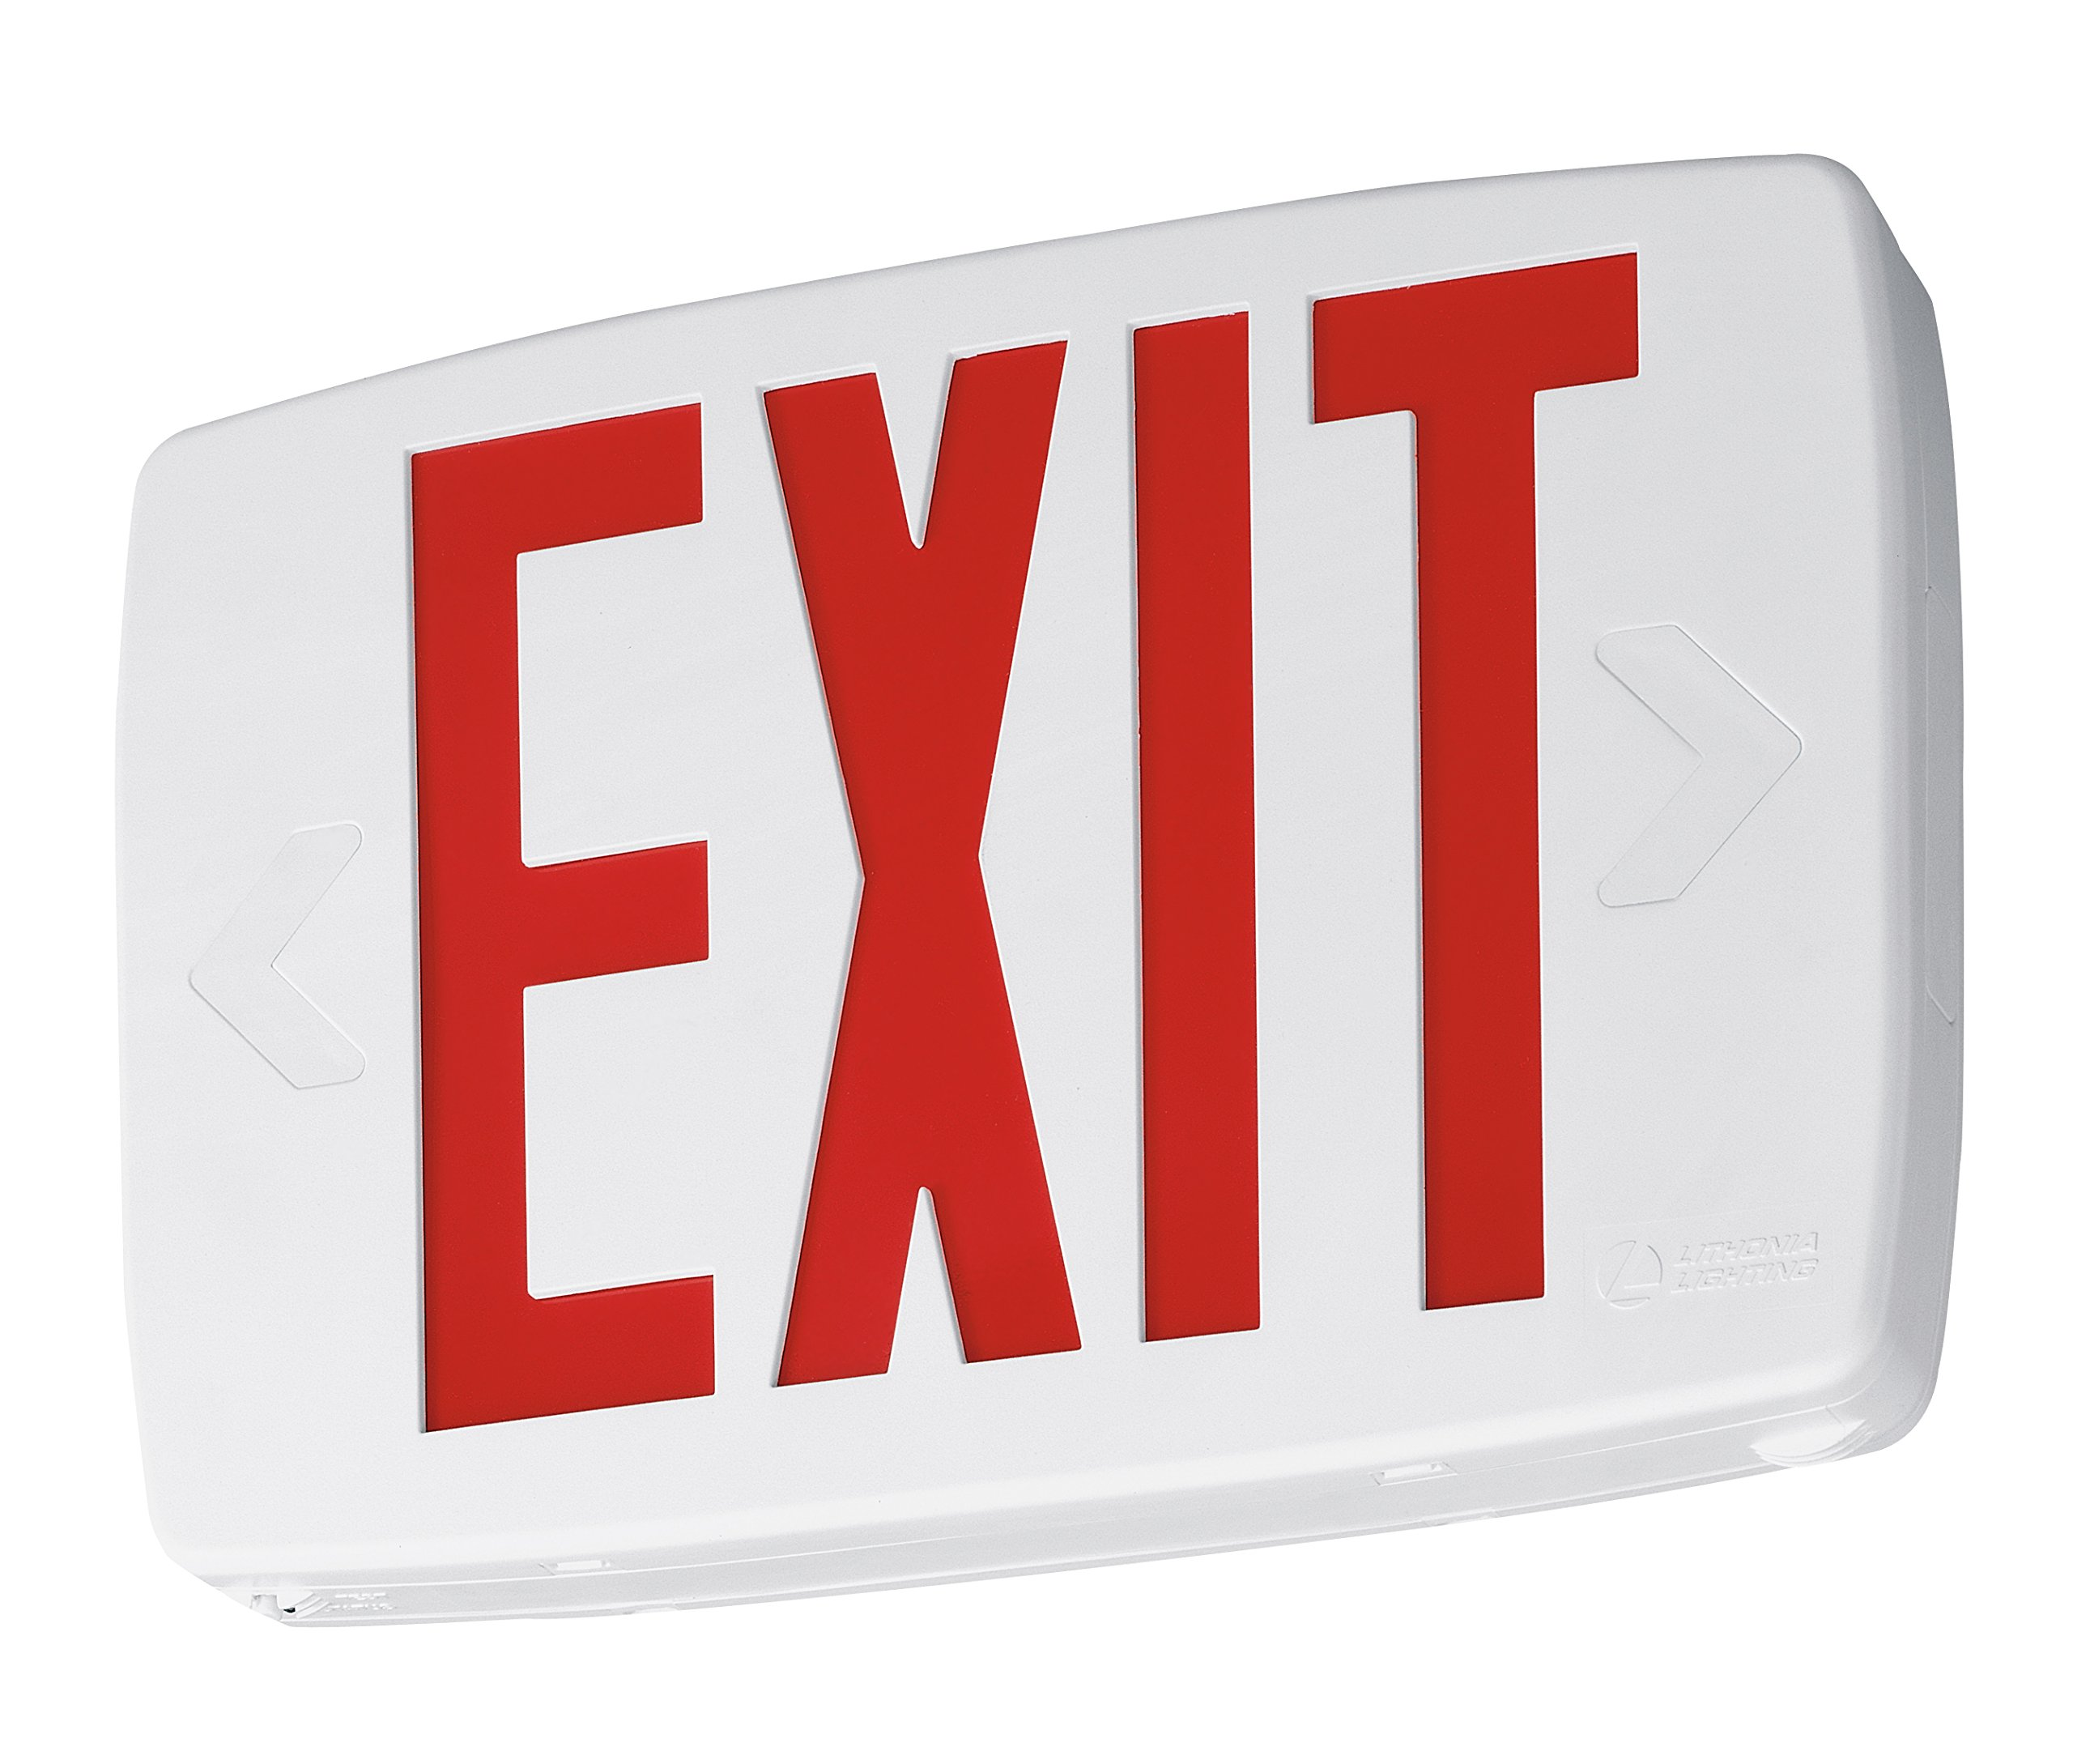 Lithonia Lighting LQM S W 3 R 120/277 EL N SD M6 LED Exit Sign Emergency with Red Letters, White